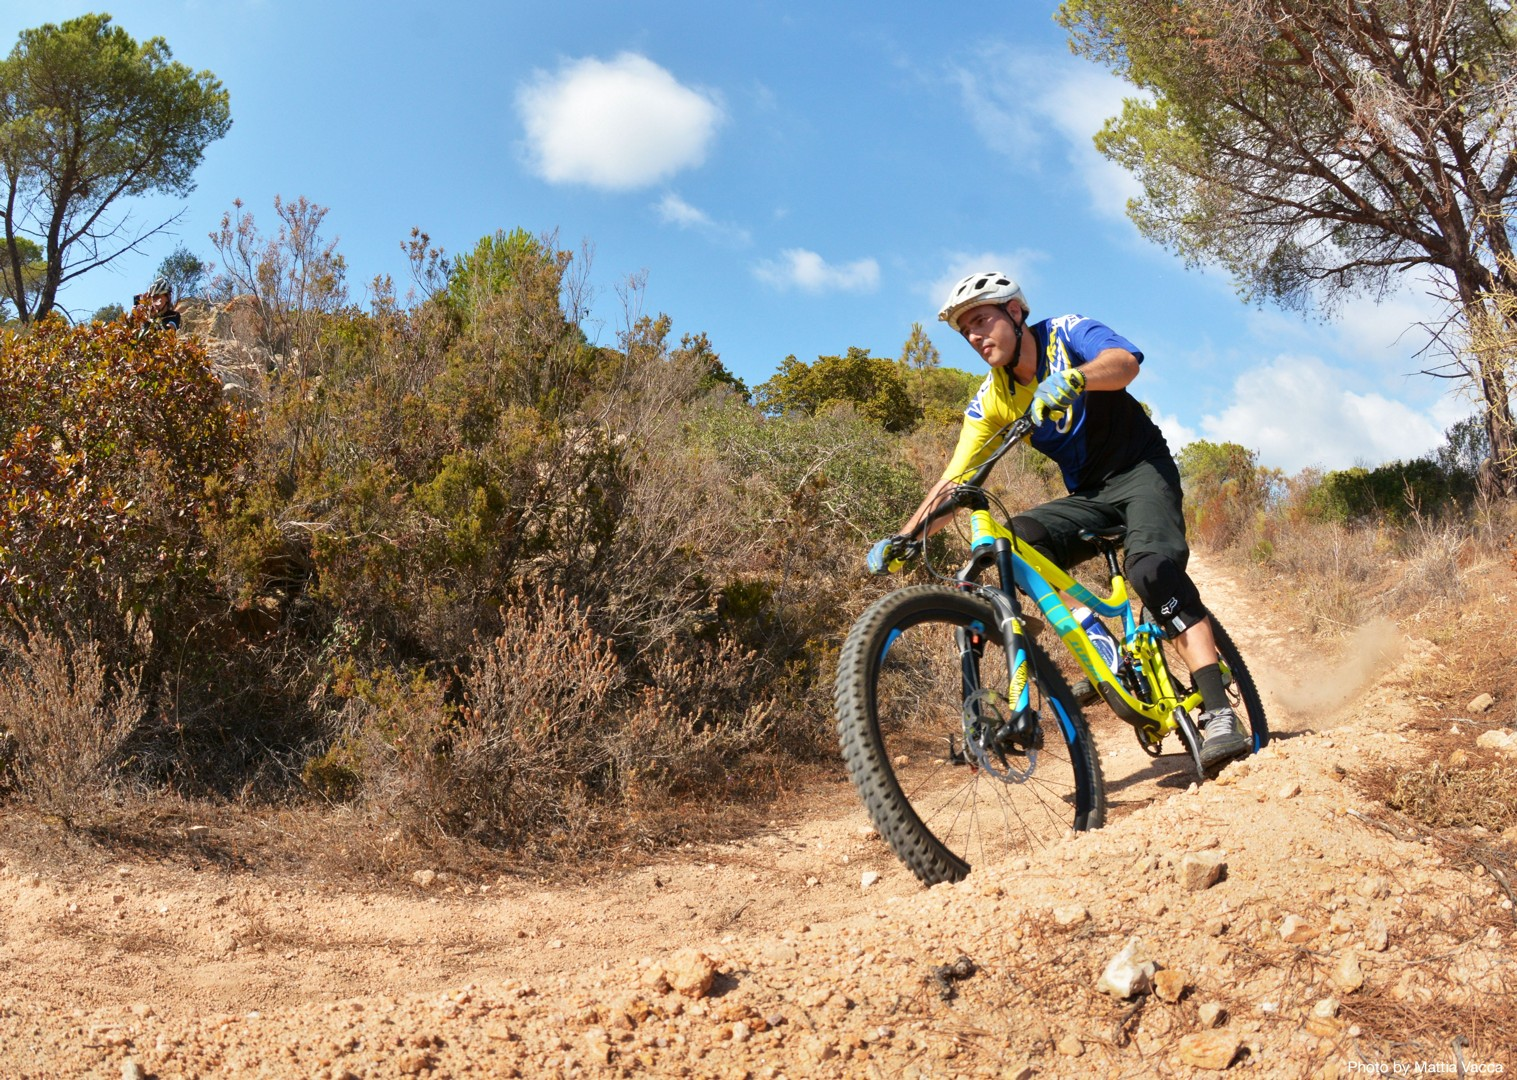 trails-sardinian-enduro-italy-guided-mountain-bike-holiday.jpg - Sardinia - Sardinian Enduro - Guided Mountain Bike Holiday - Mountain Biking